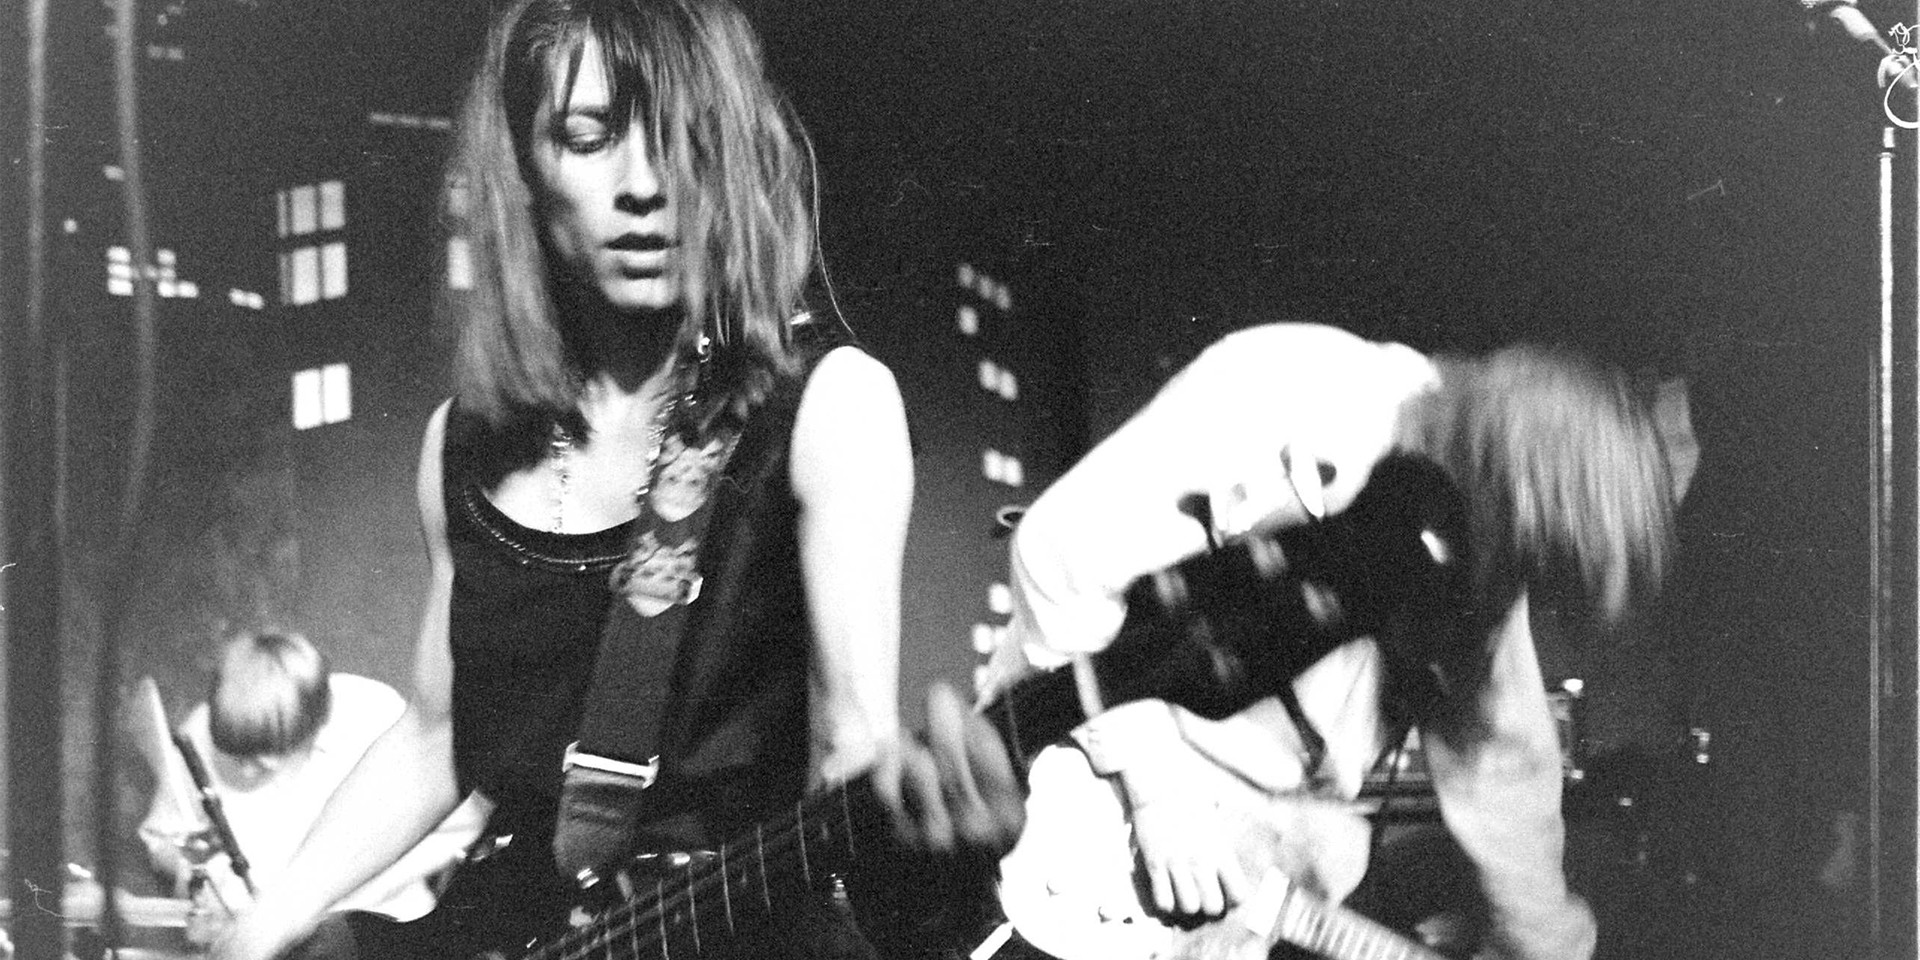 Essentials: Sonic Youth's Daydream Nation (1988)